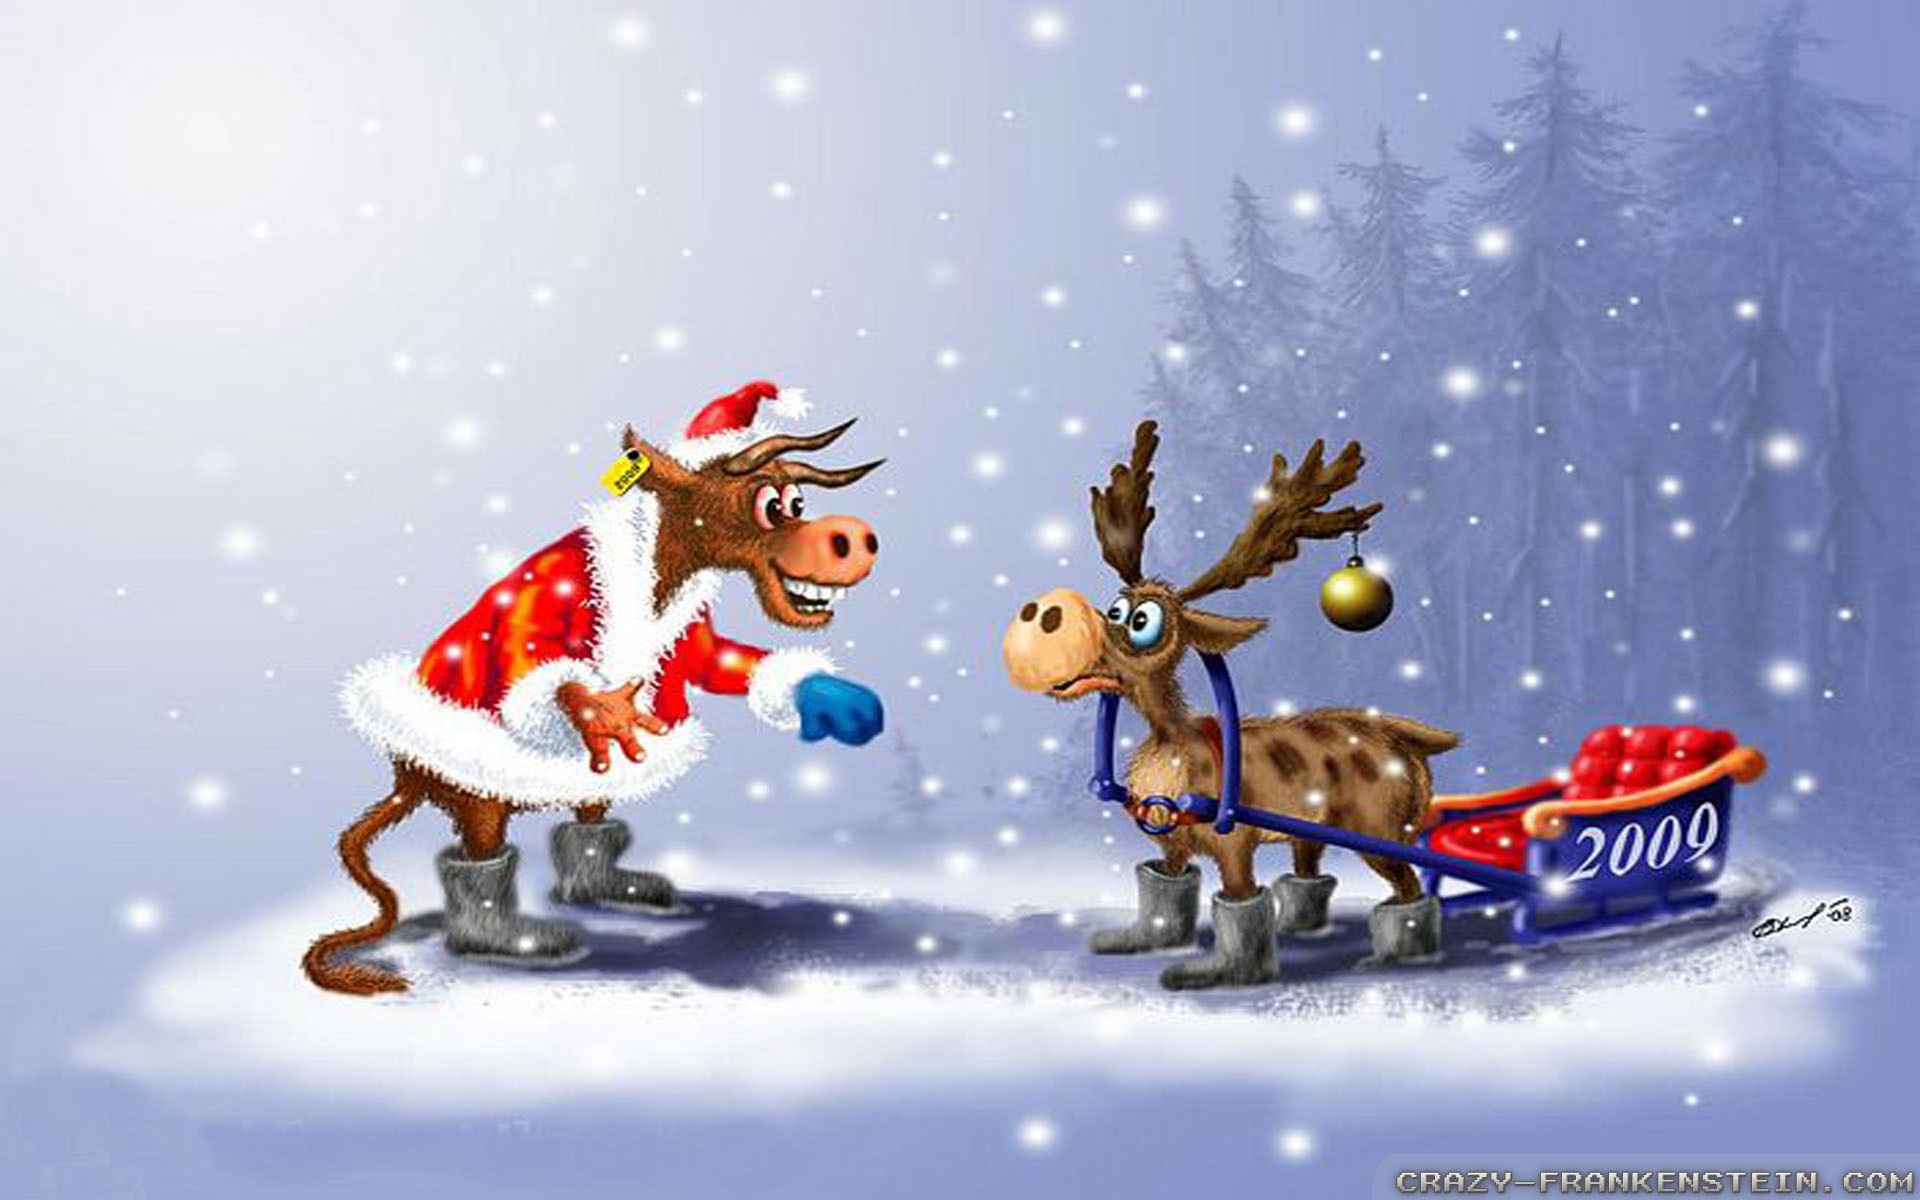 Funny Wallpapers For Laptop 60 Images: Funny Winter Wallpaper (60+ Images